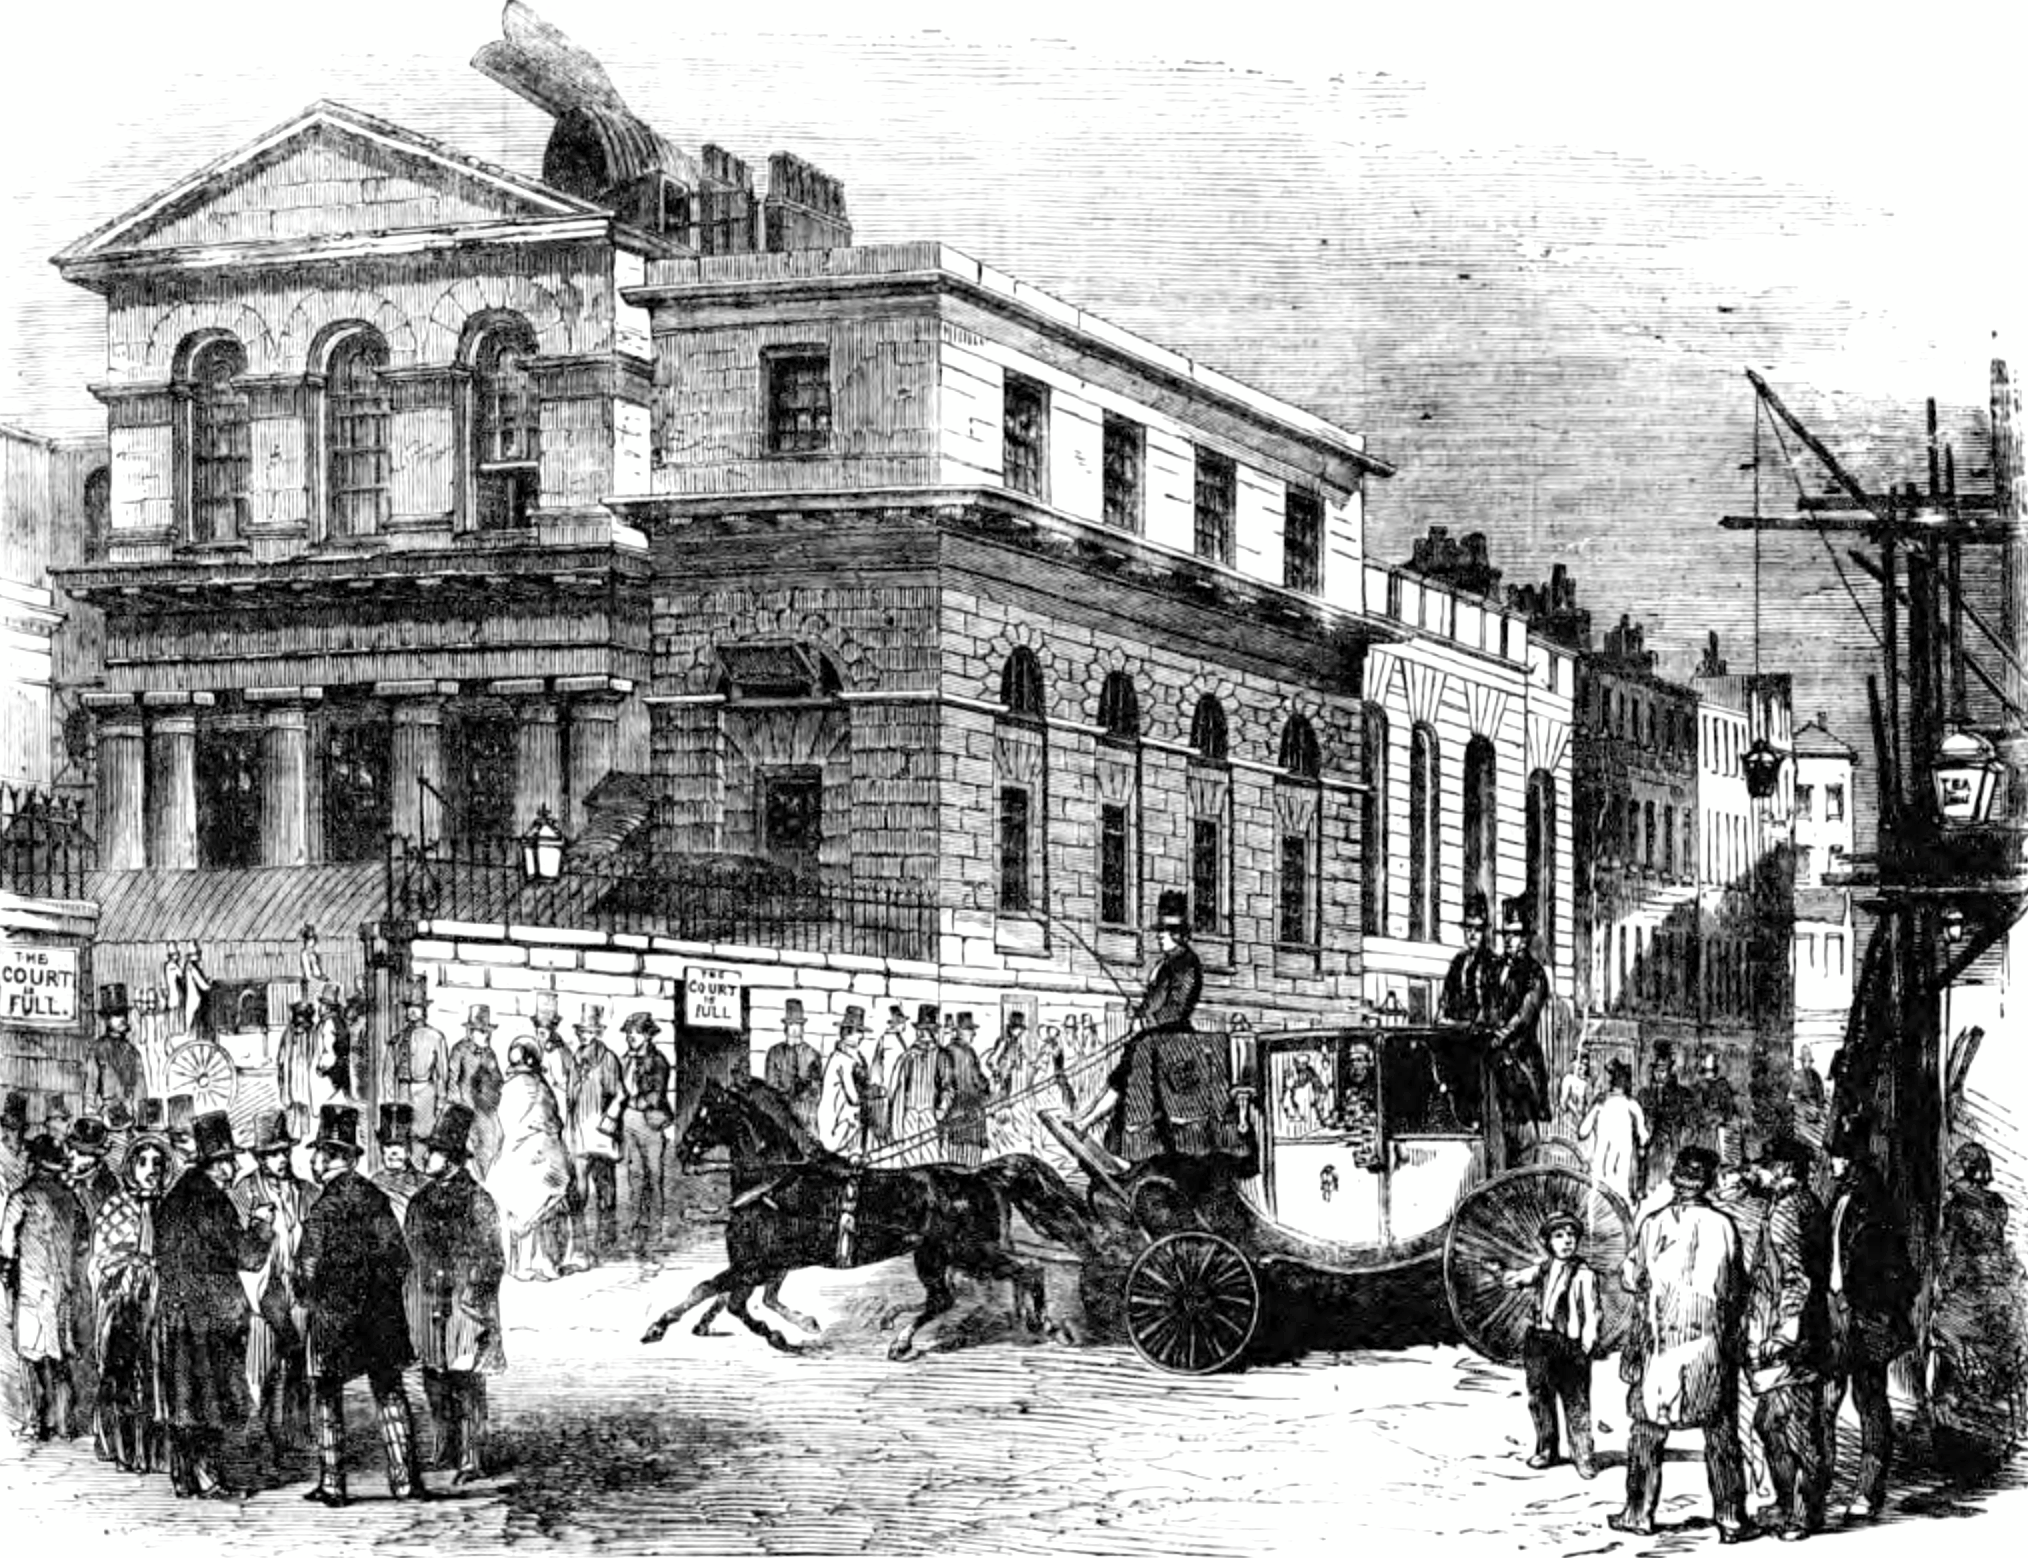 The Old Bailey and Newgate Gaol